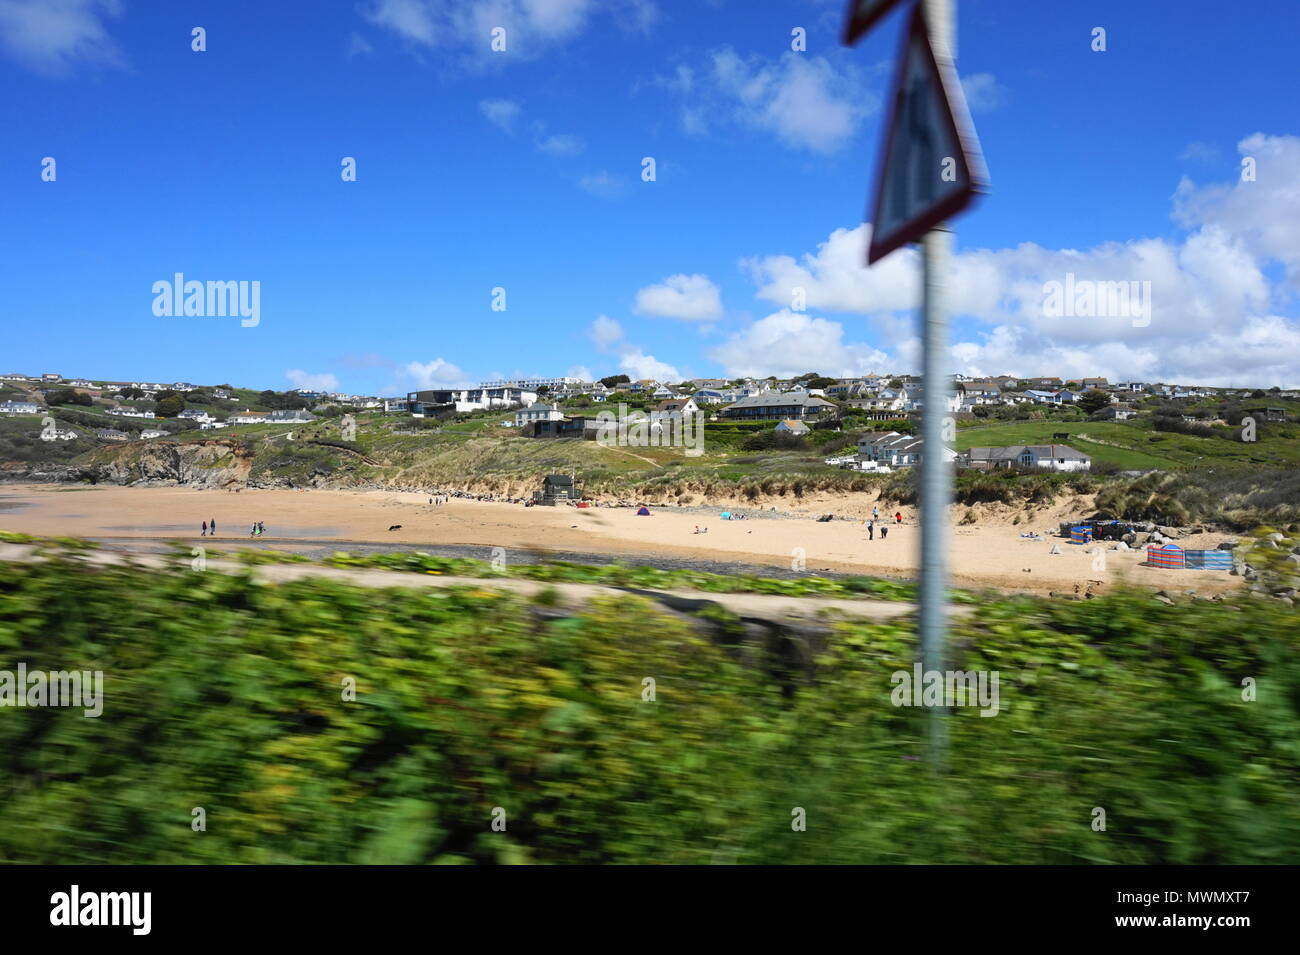 World Rushing By (Moving at High Speed on the Cornish Coast) - Stock Image